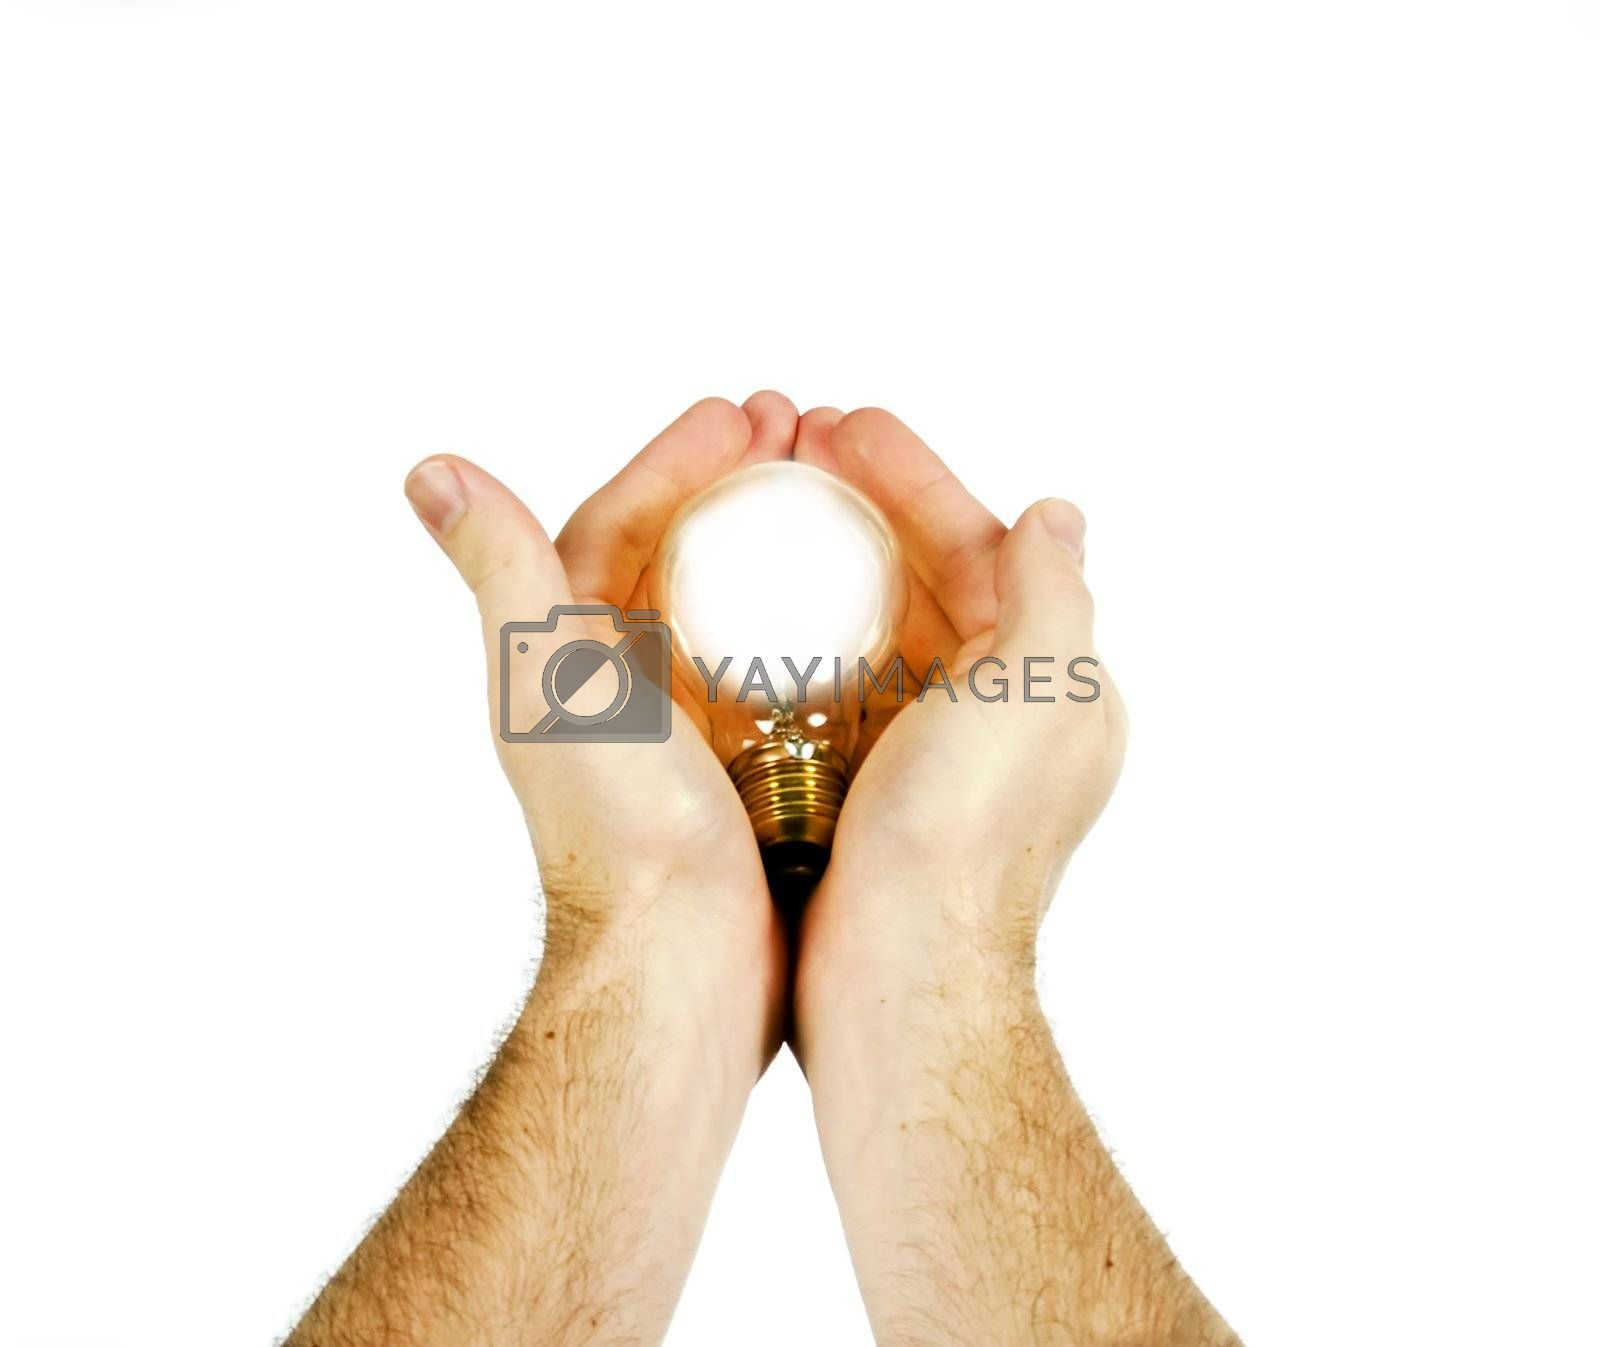 A concept image of a new idea, new birth.  A light bulb being gently held in a pair of mens hands, while the light bulb is glowing